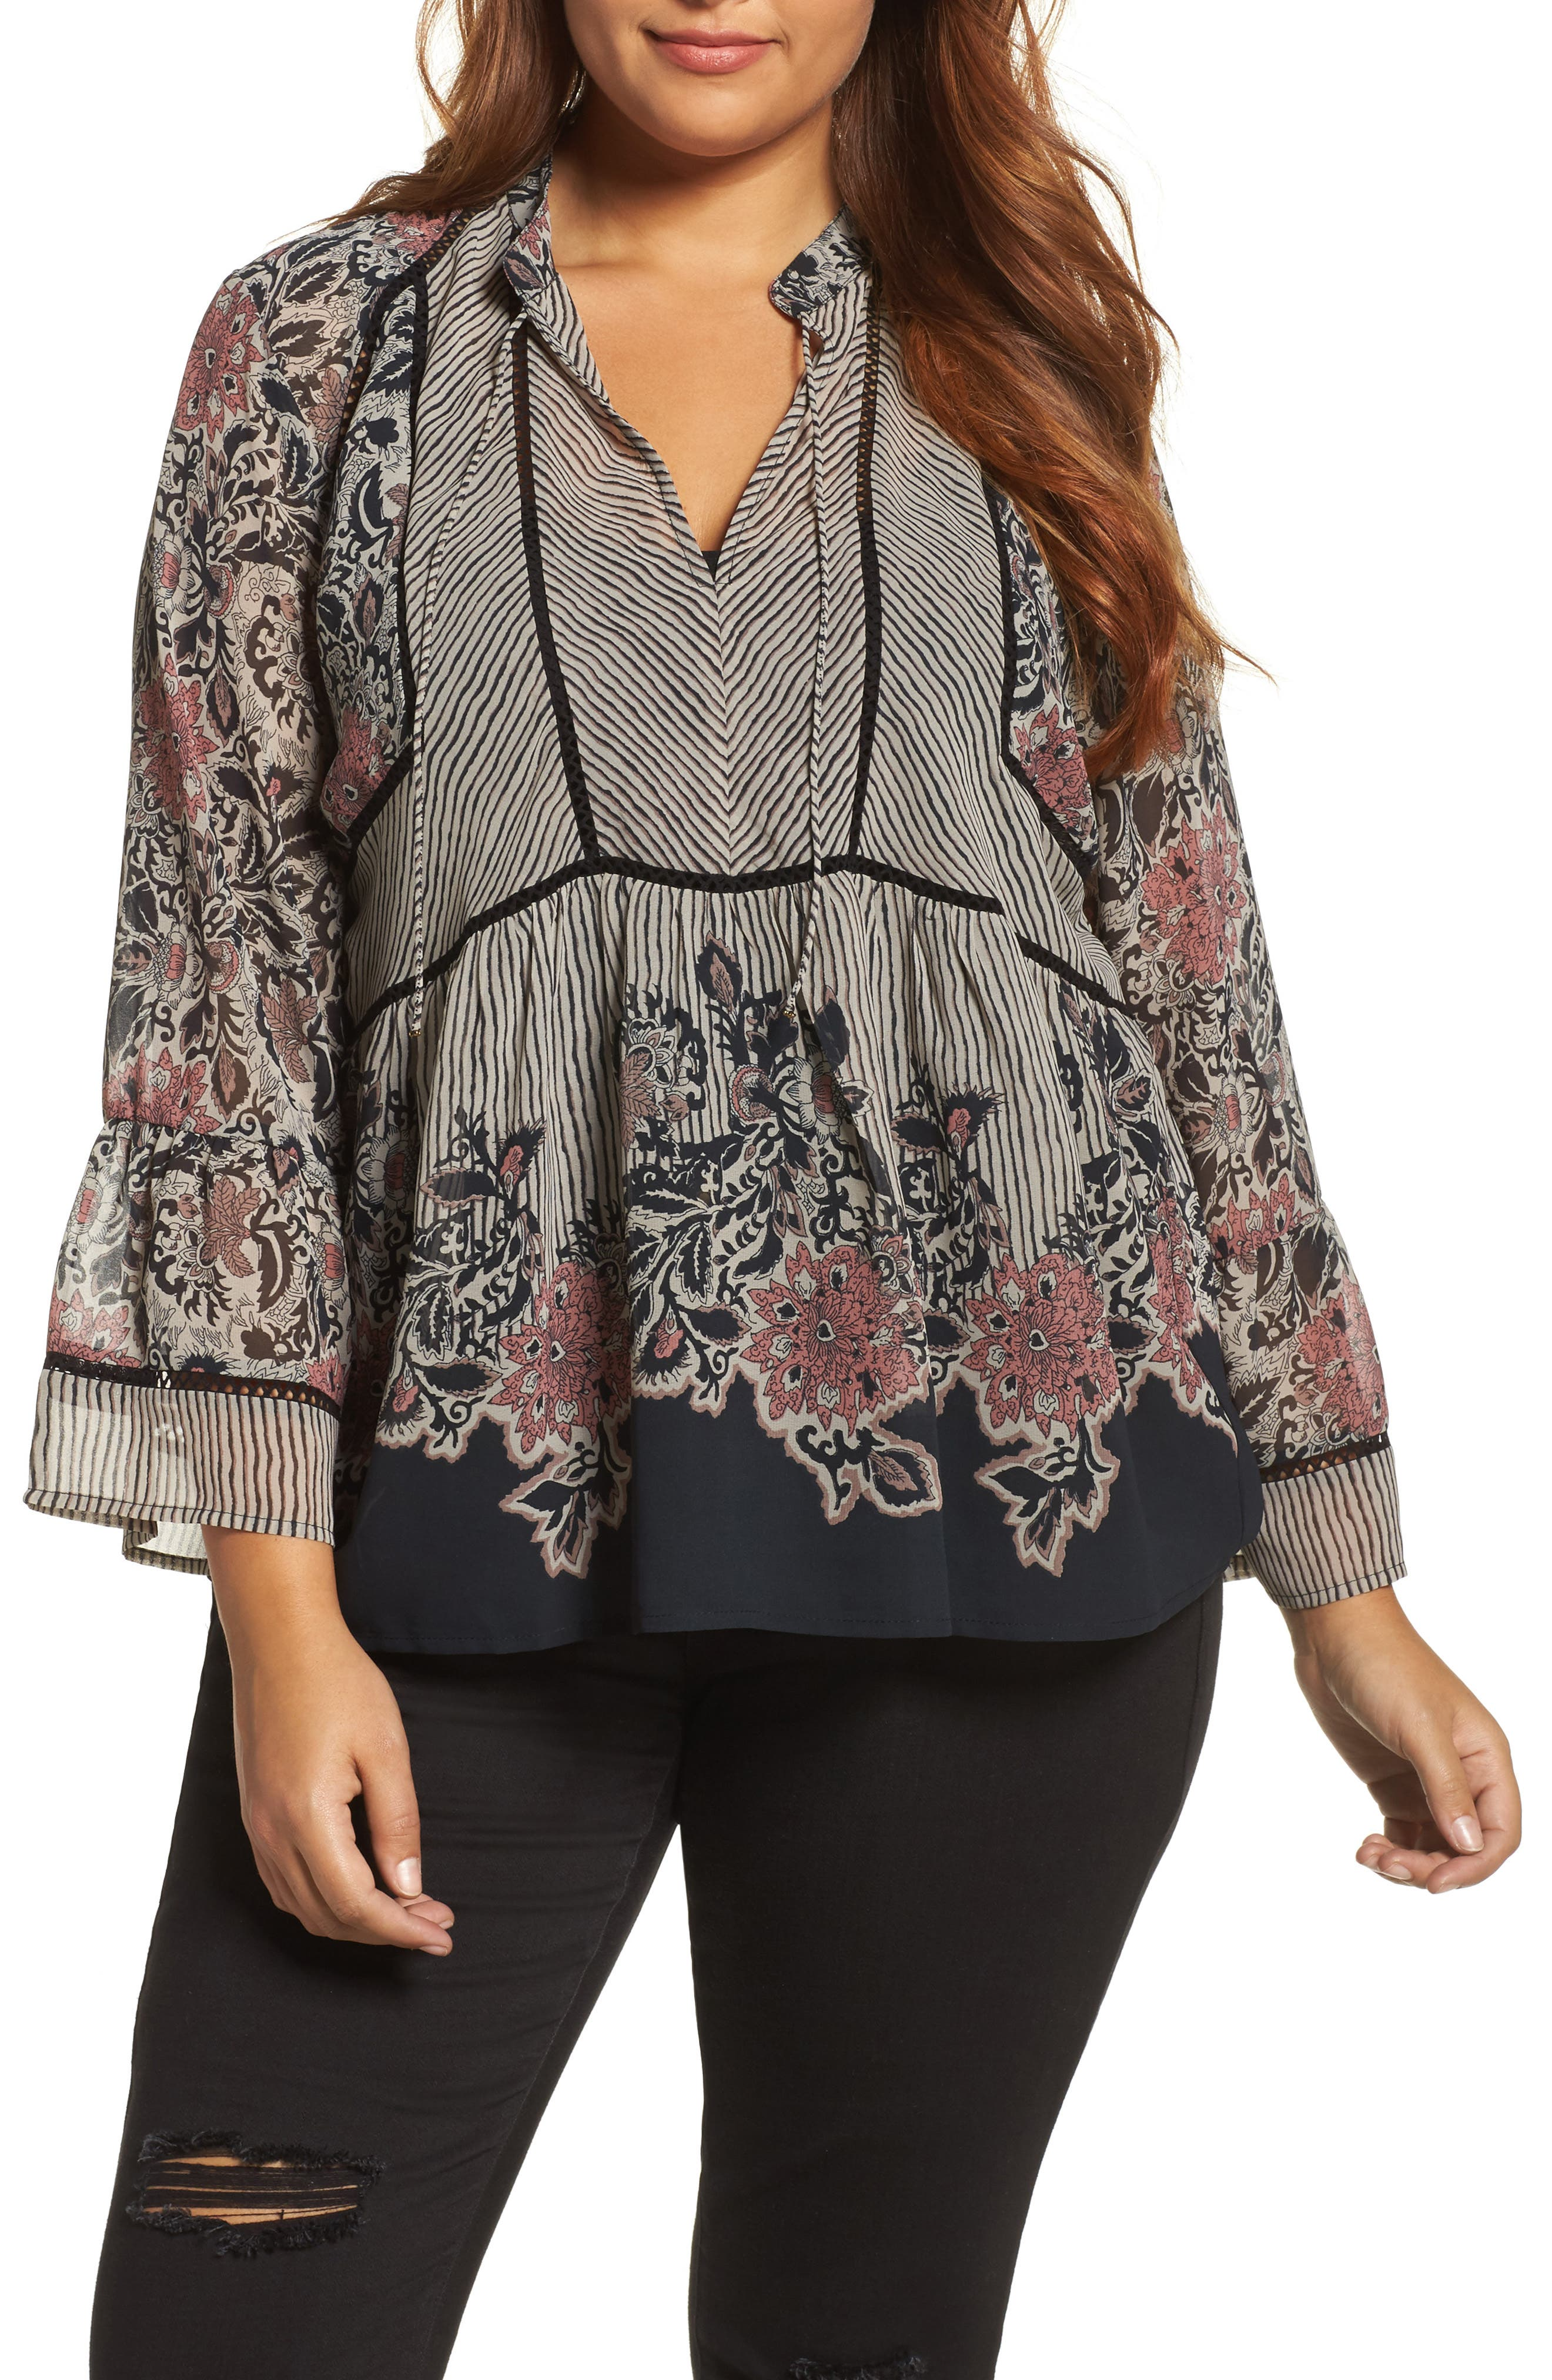 Main Image - Lucky Brand Mixed Print Top (Plus Size)